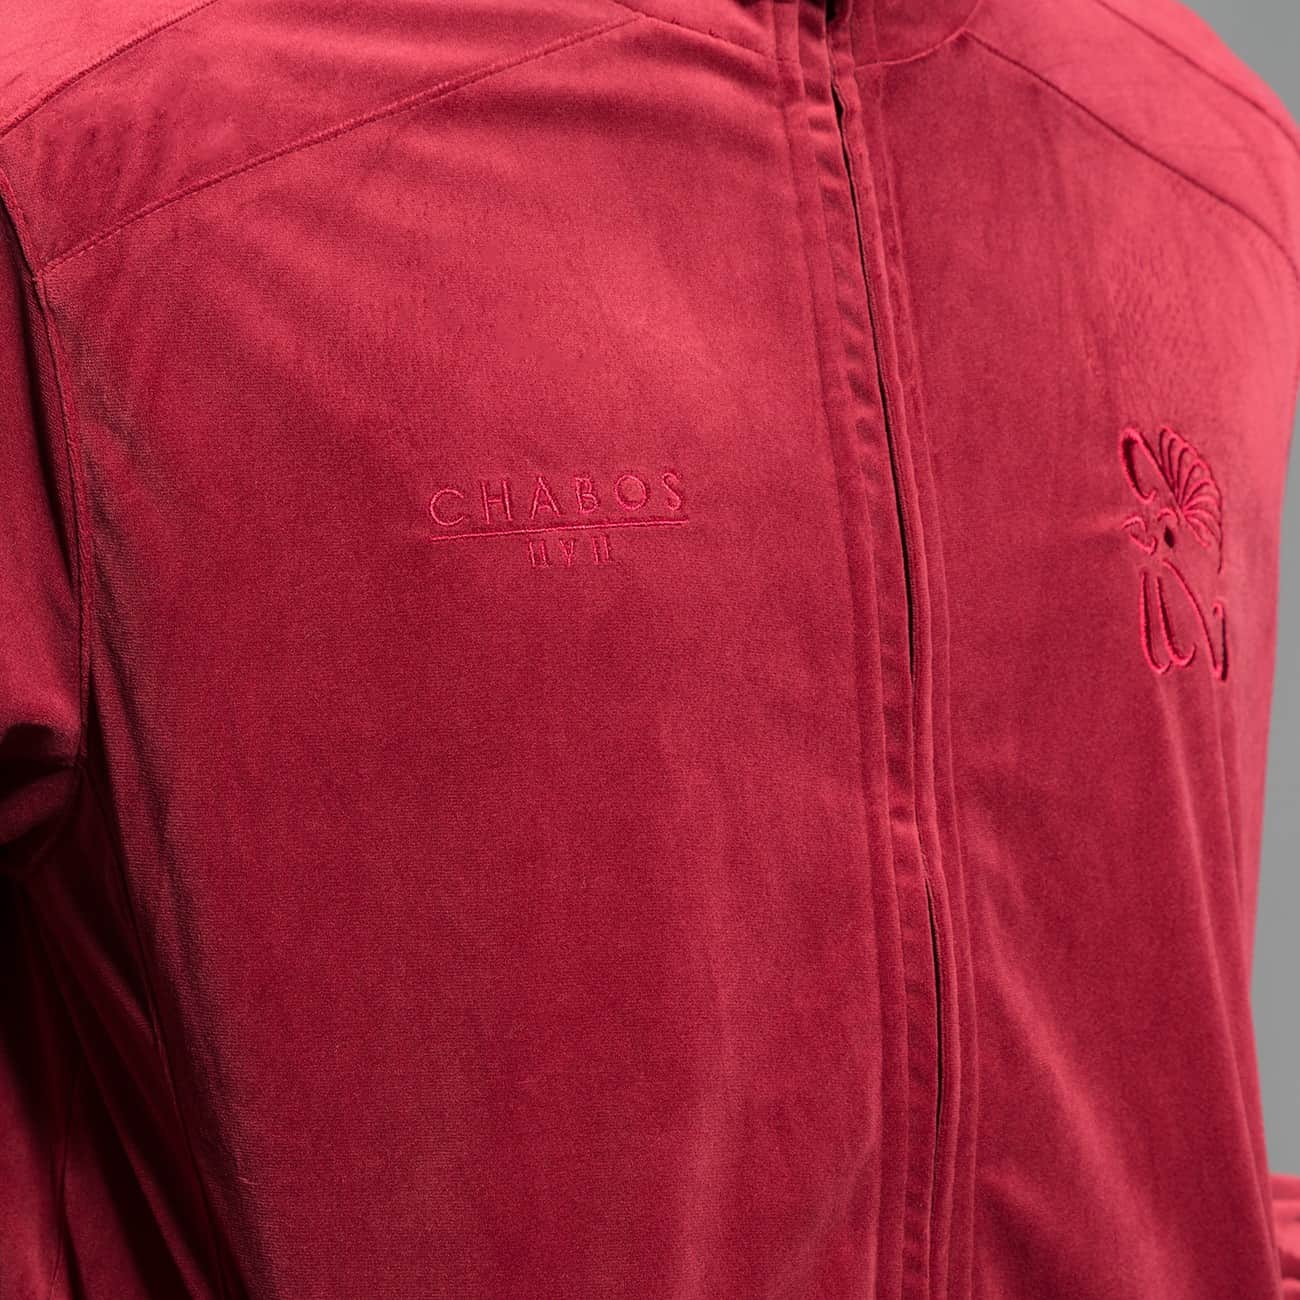 CHABOS IIVII Lightweight Jacket Core Velour Samt red